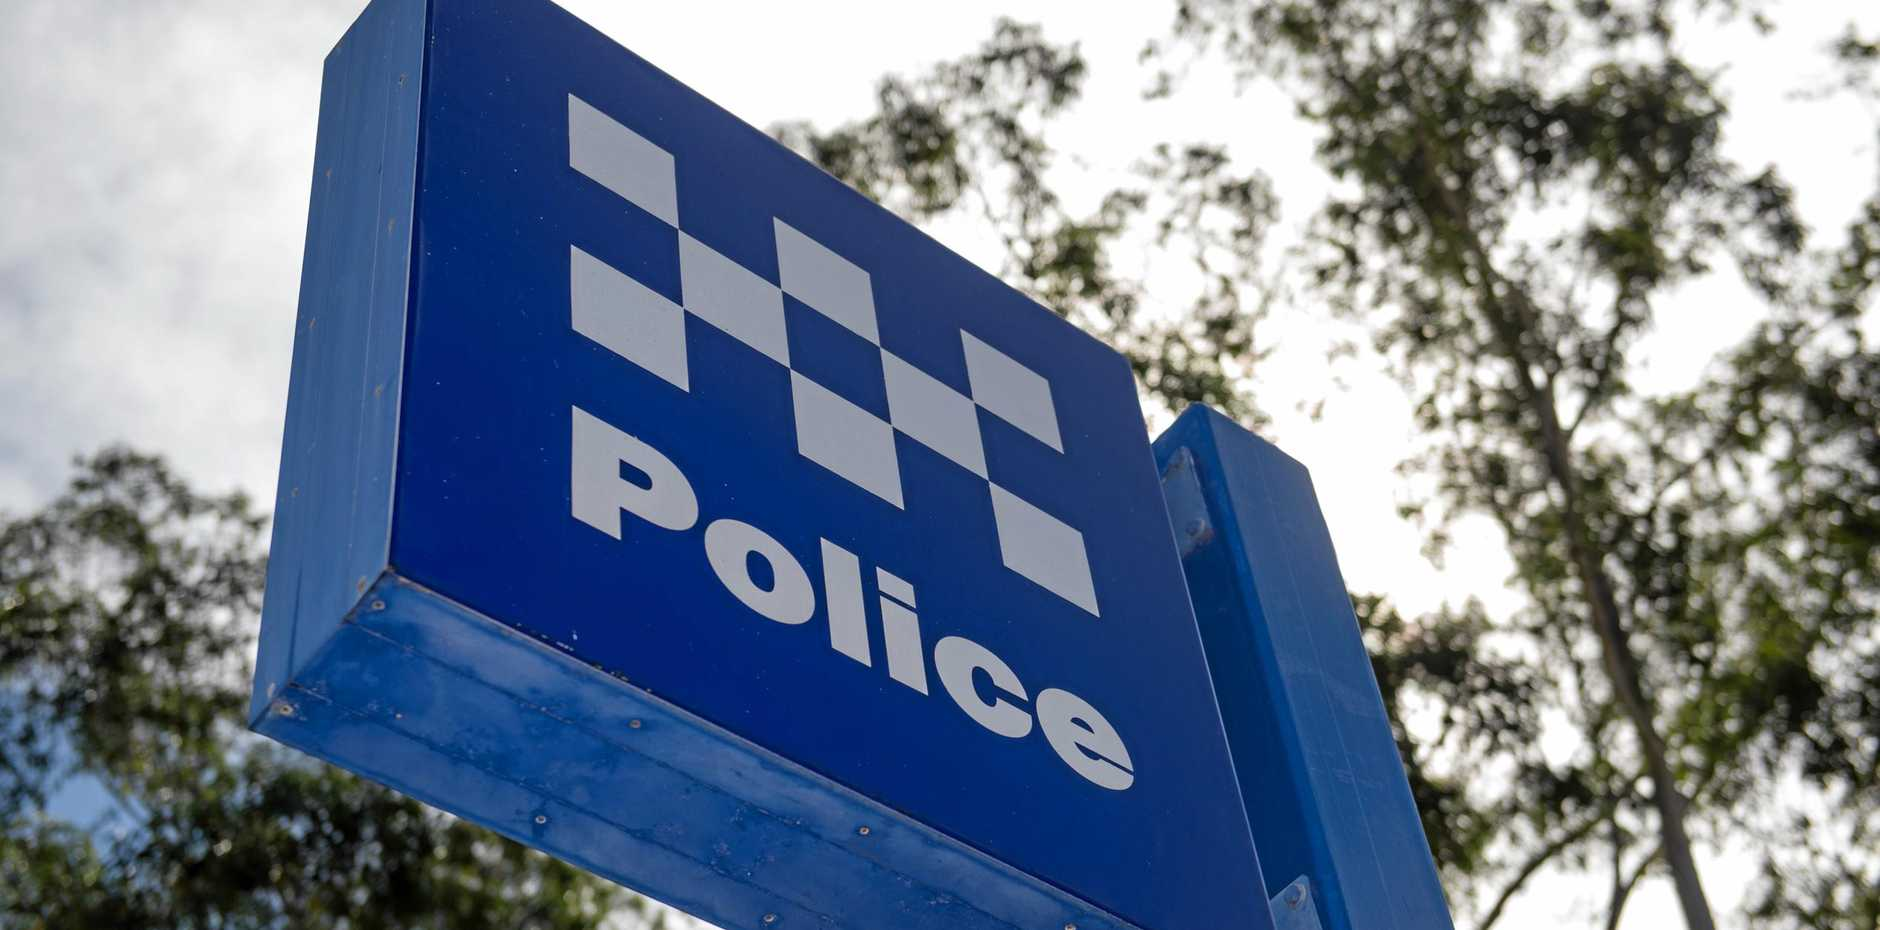 POLICE: NSW police highway patrol car helped in the manhunt.